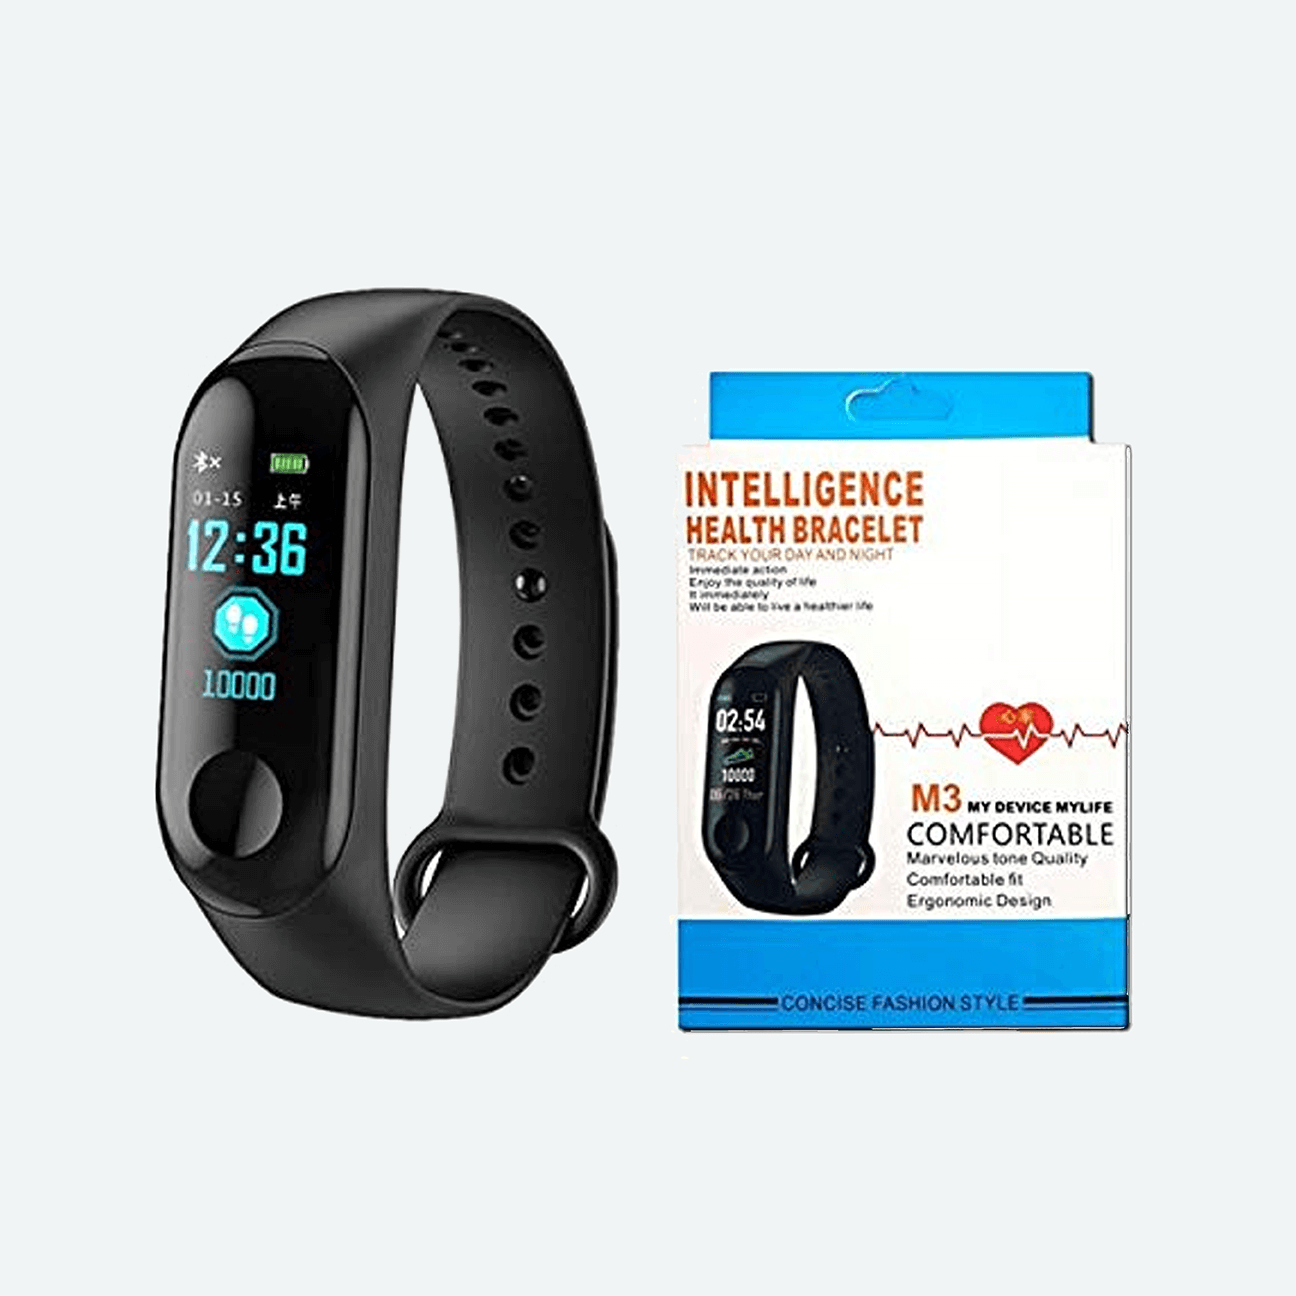 M3 Intelligence Bluetooth Health Wrist Smart Band